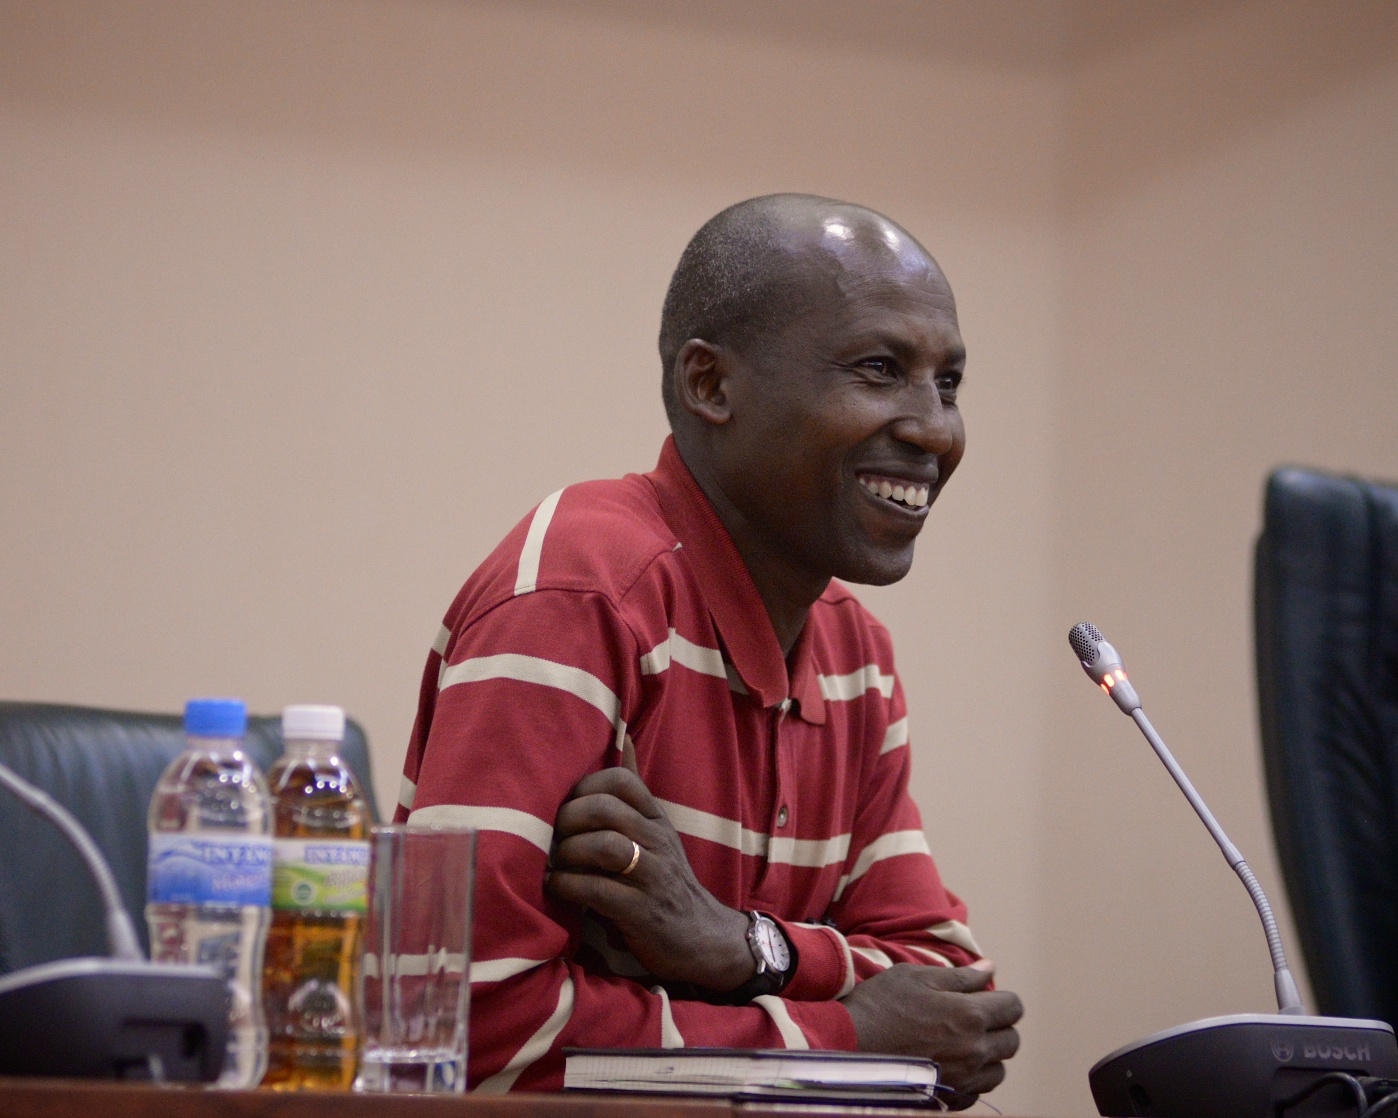 Meet Pastor John, Up Close And Personal: Learn About His Unique Work In Rwanda